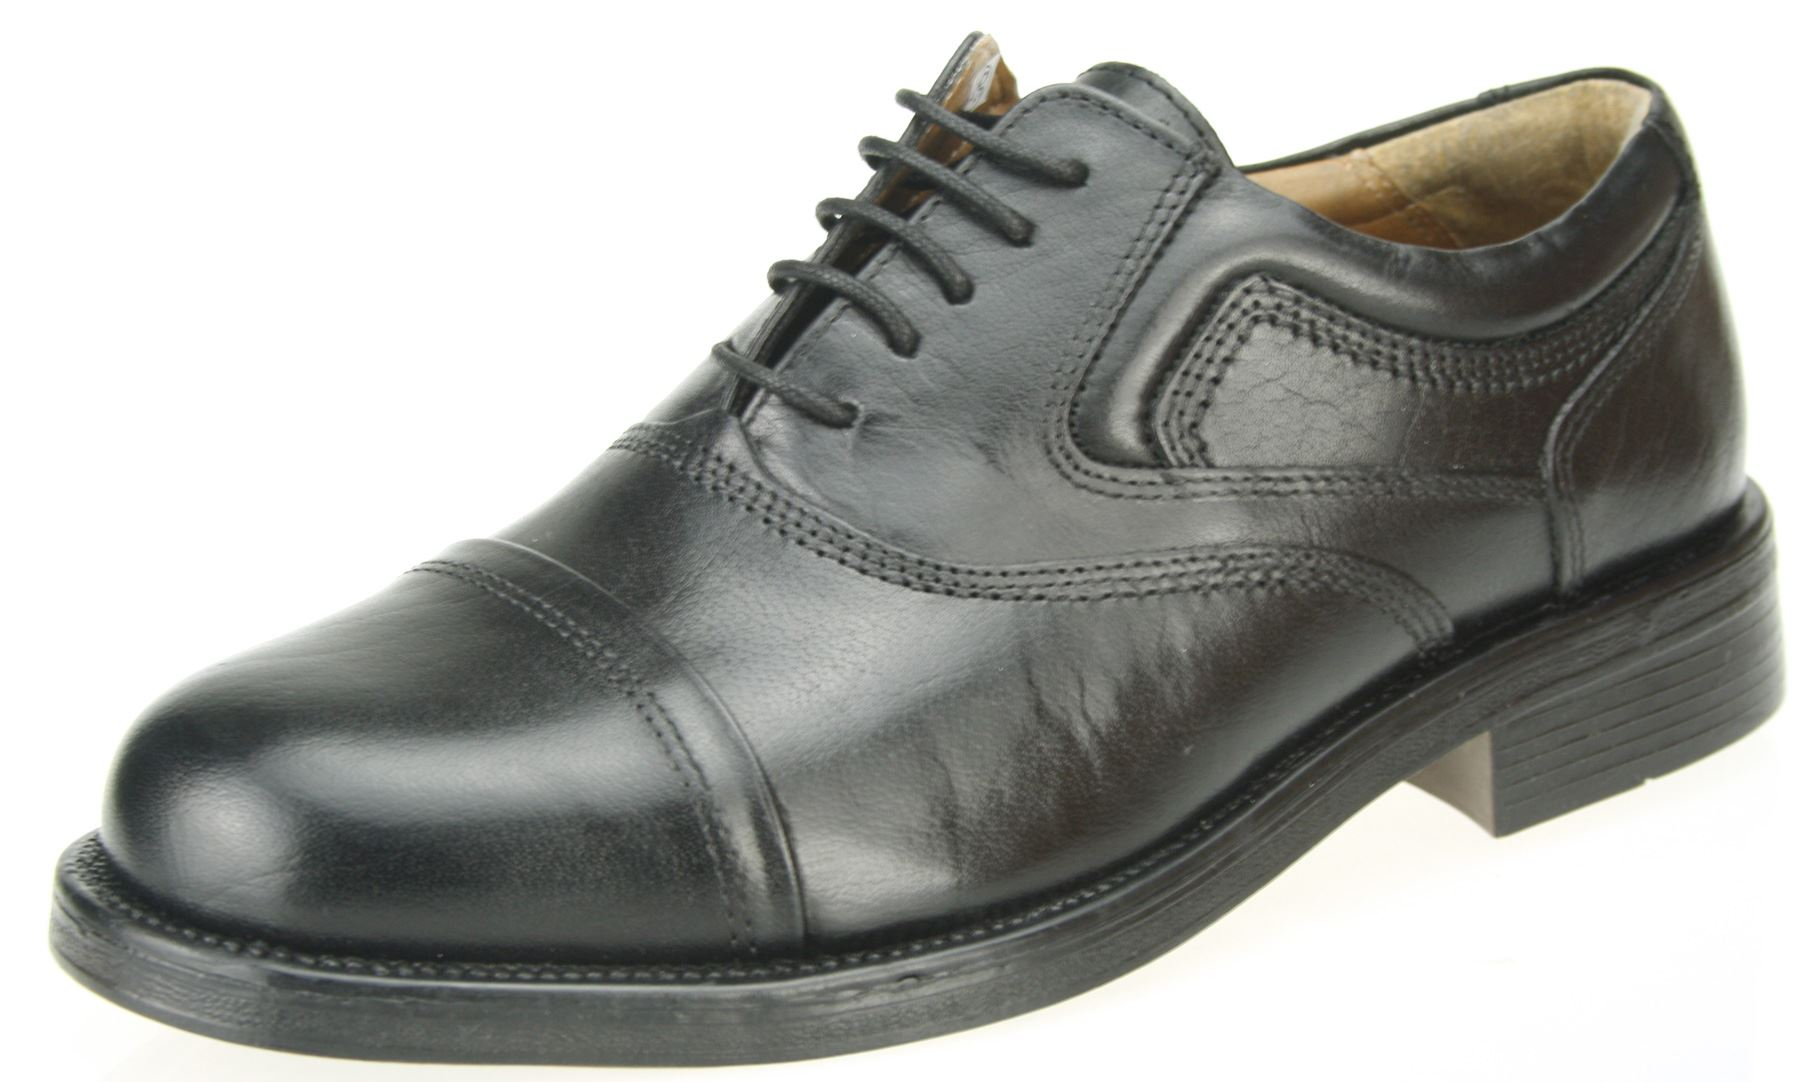 Find great deals on eBay for mens black leather oxford shoes. Shop with confidence.